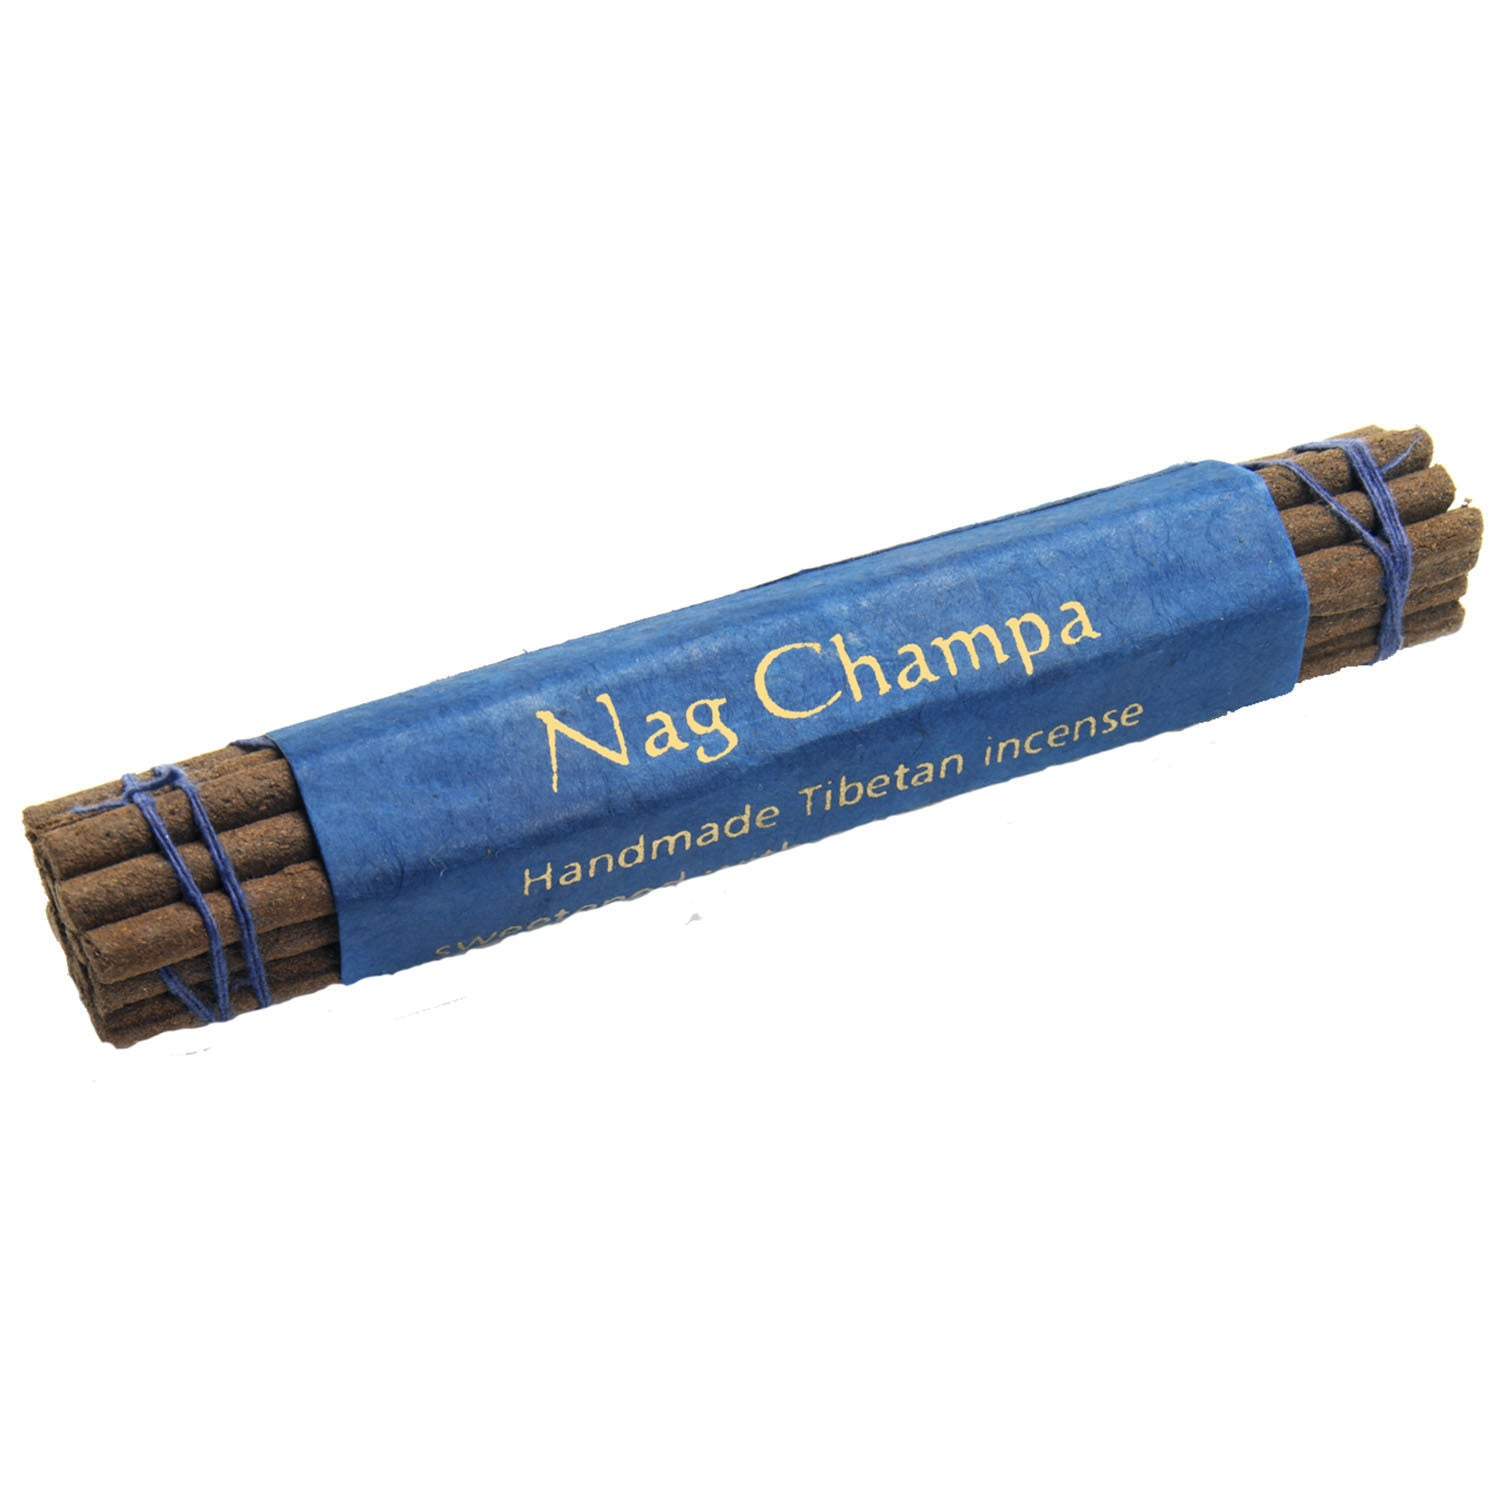 Tibetan Incense Bundle, Nag Champa